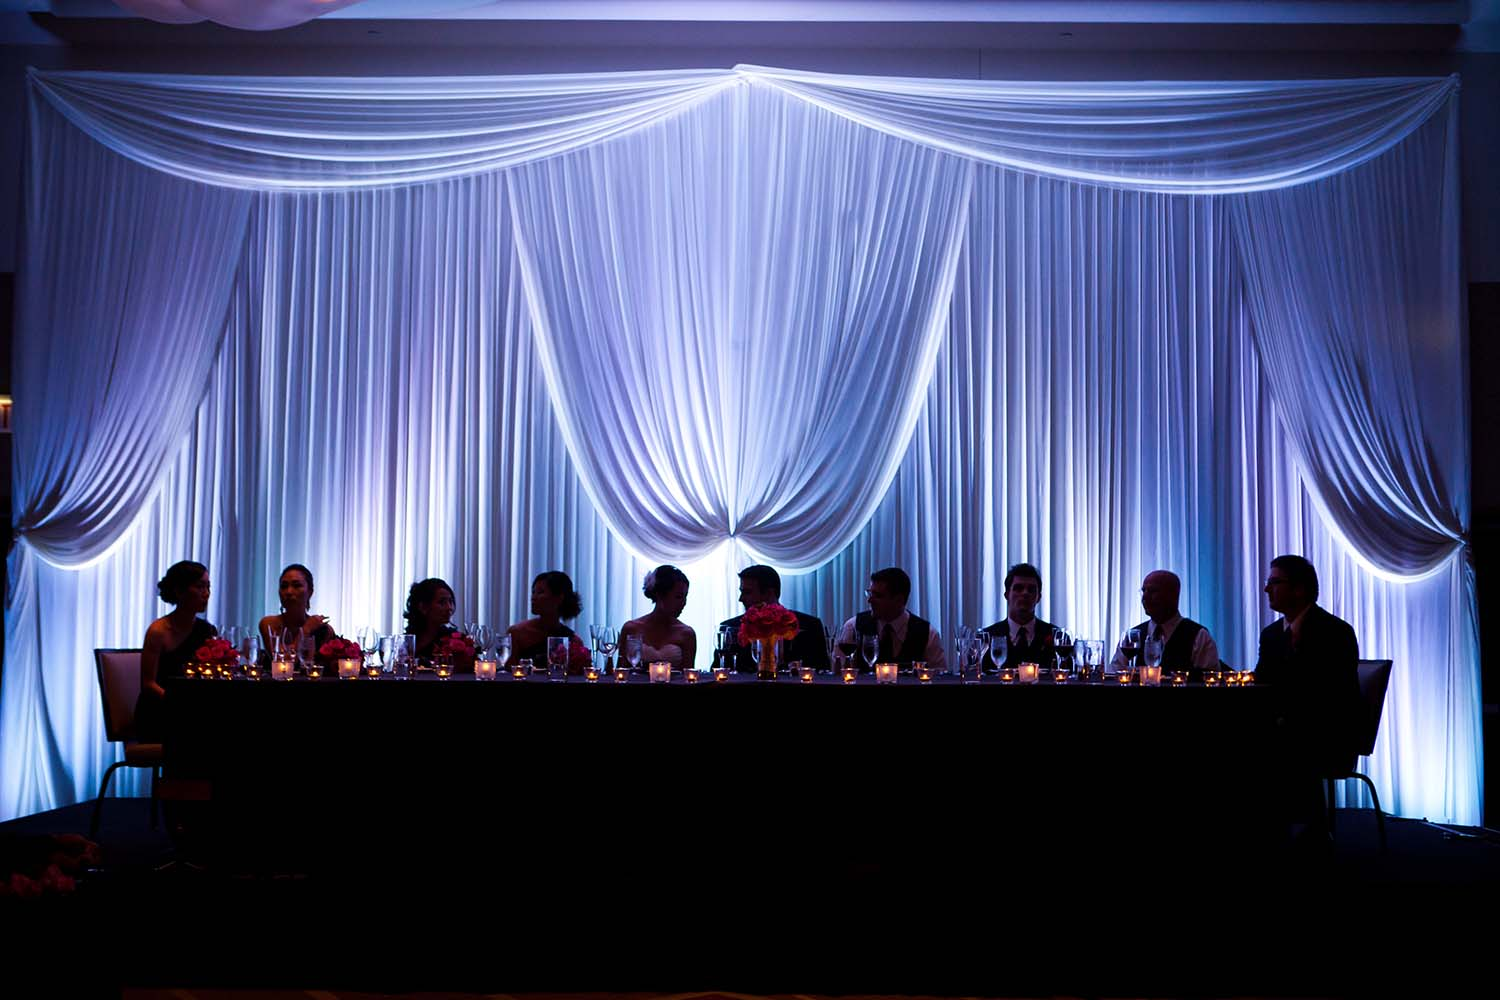 Silhouette Bridal Party Table Reception